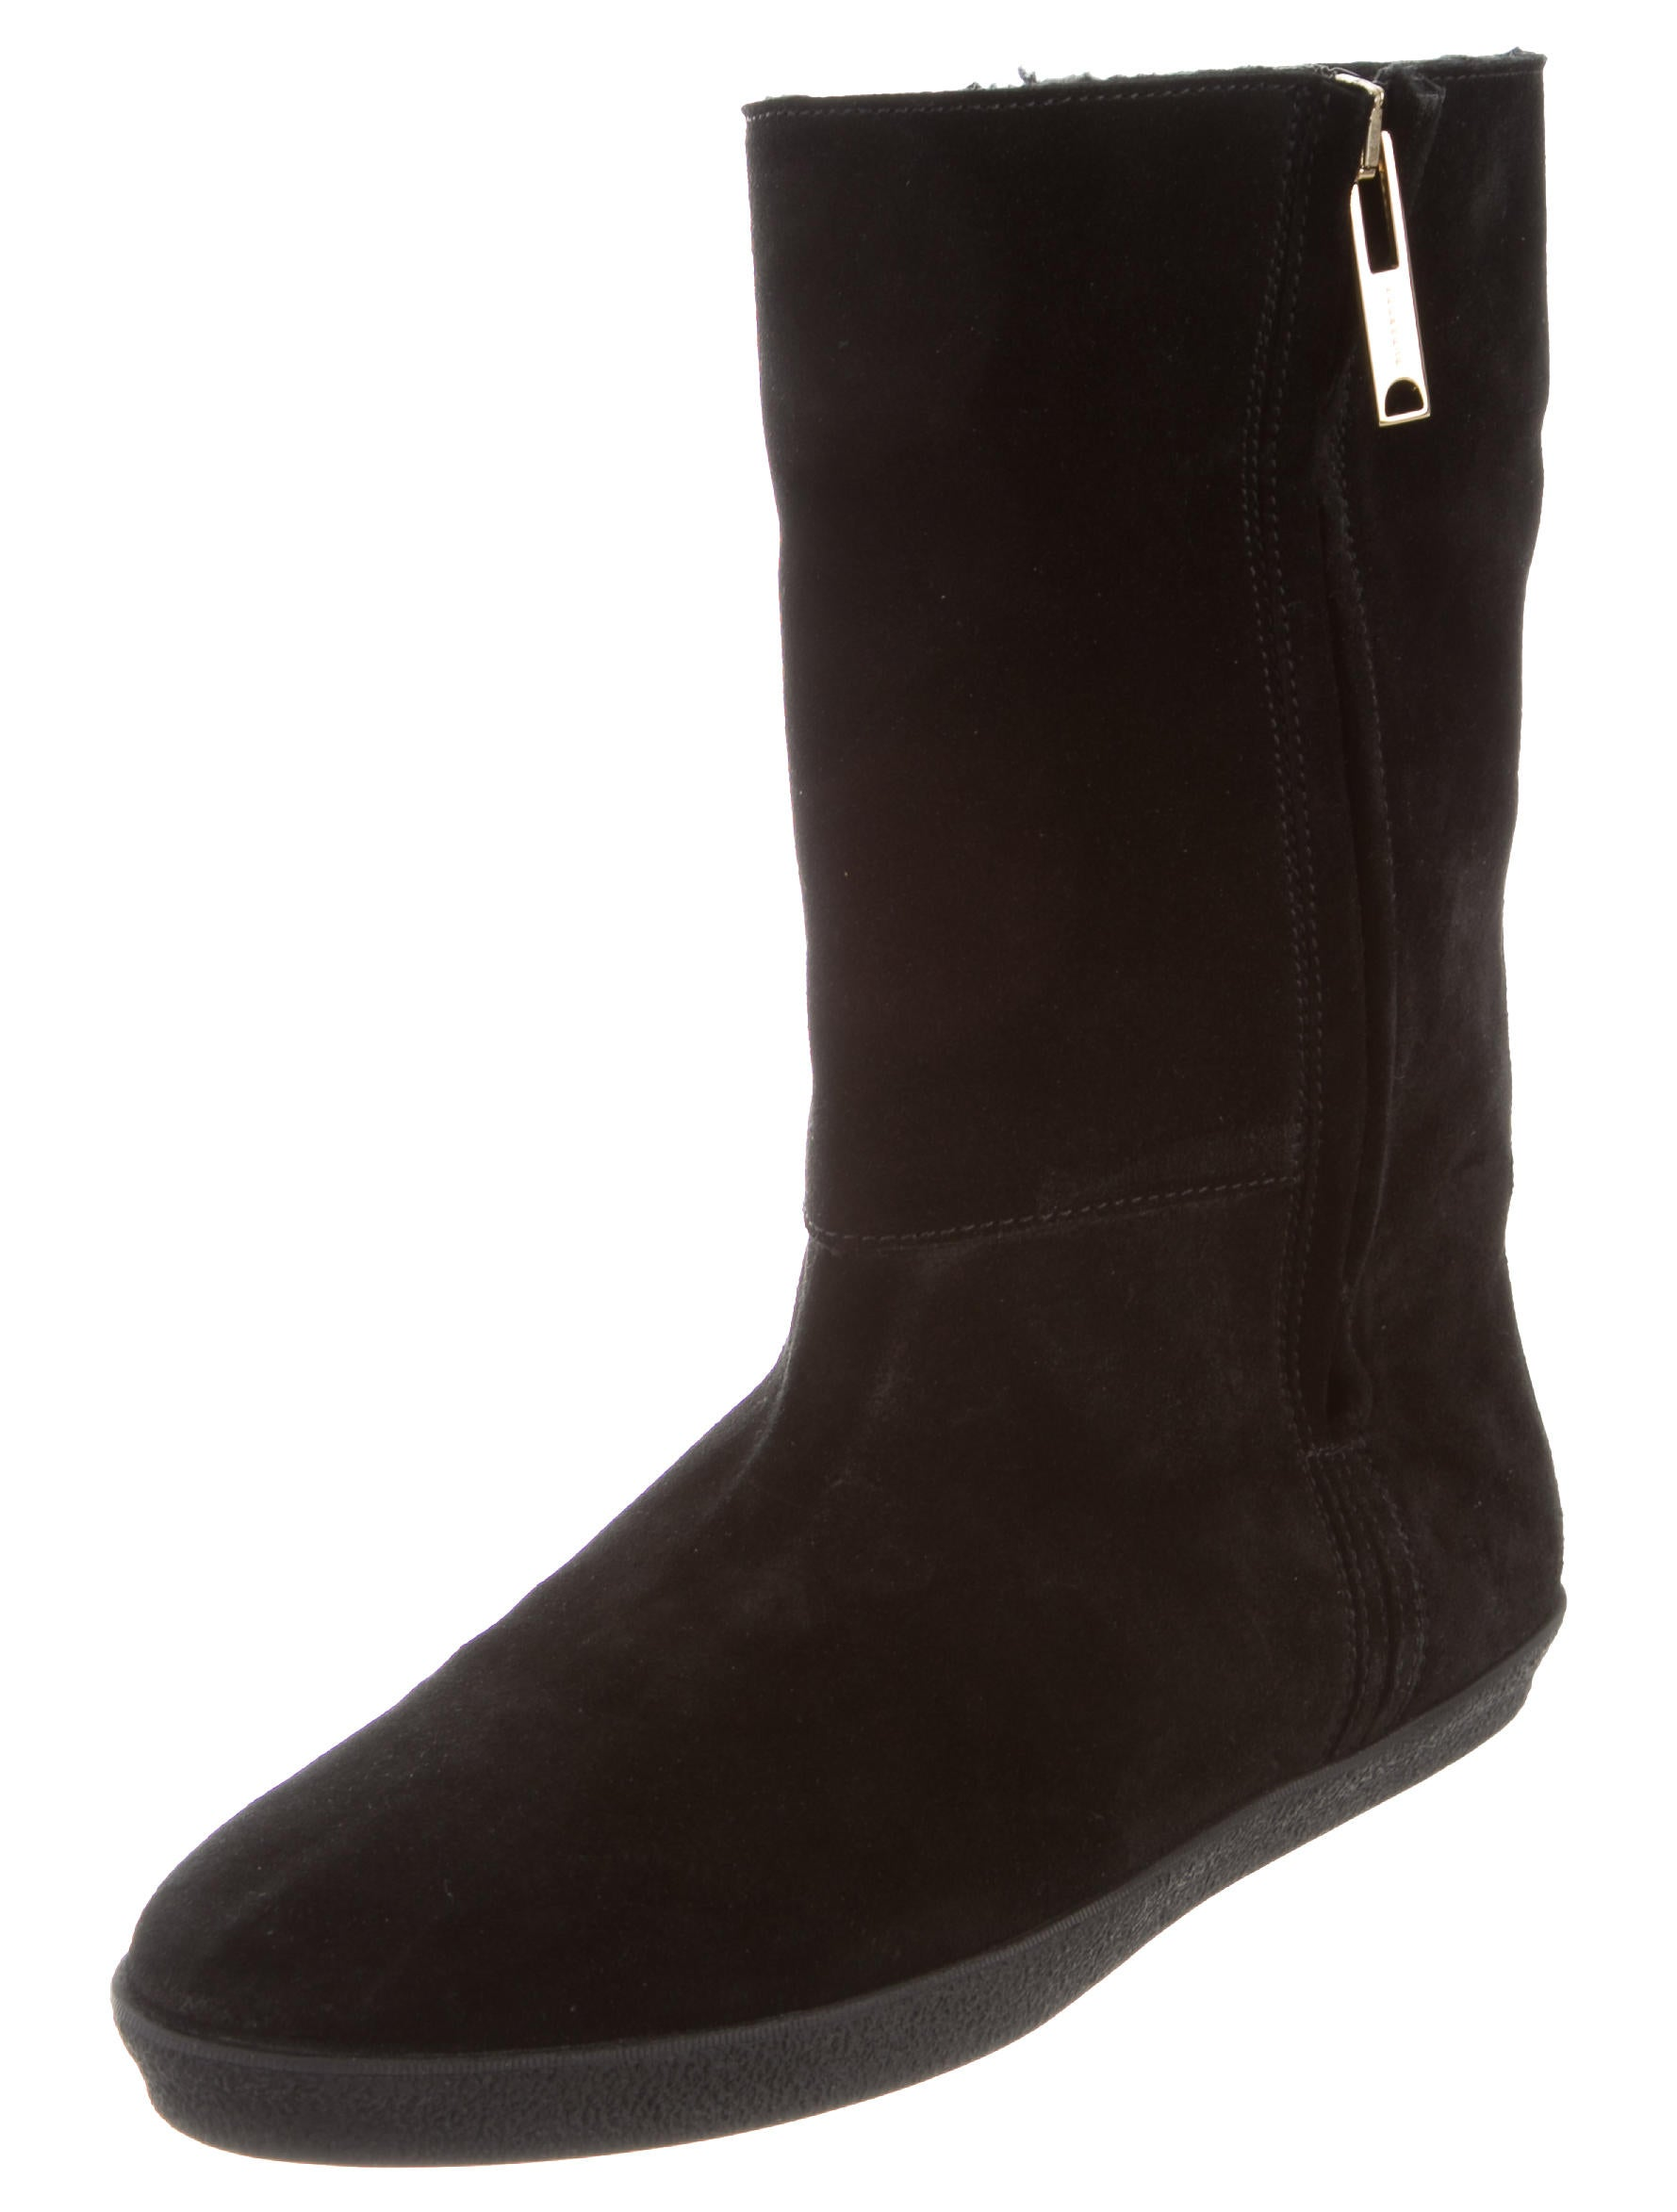 burberry suede mid calf boots shoes bur75644 the